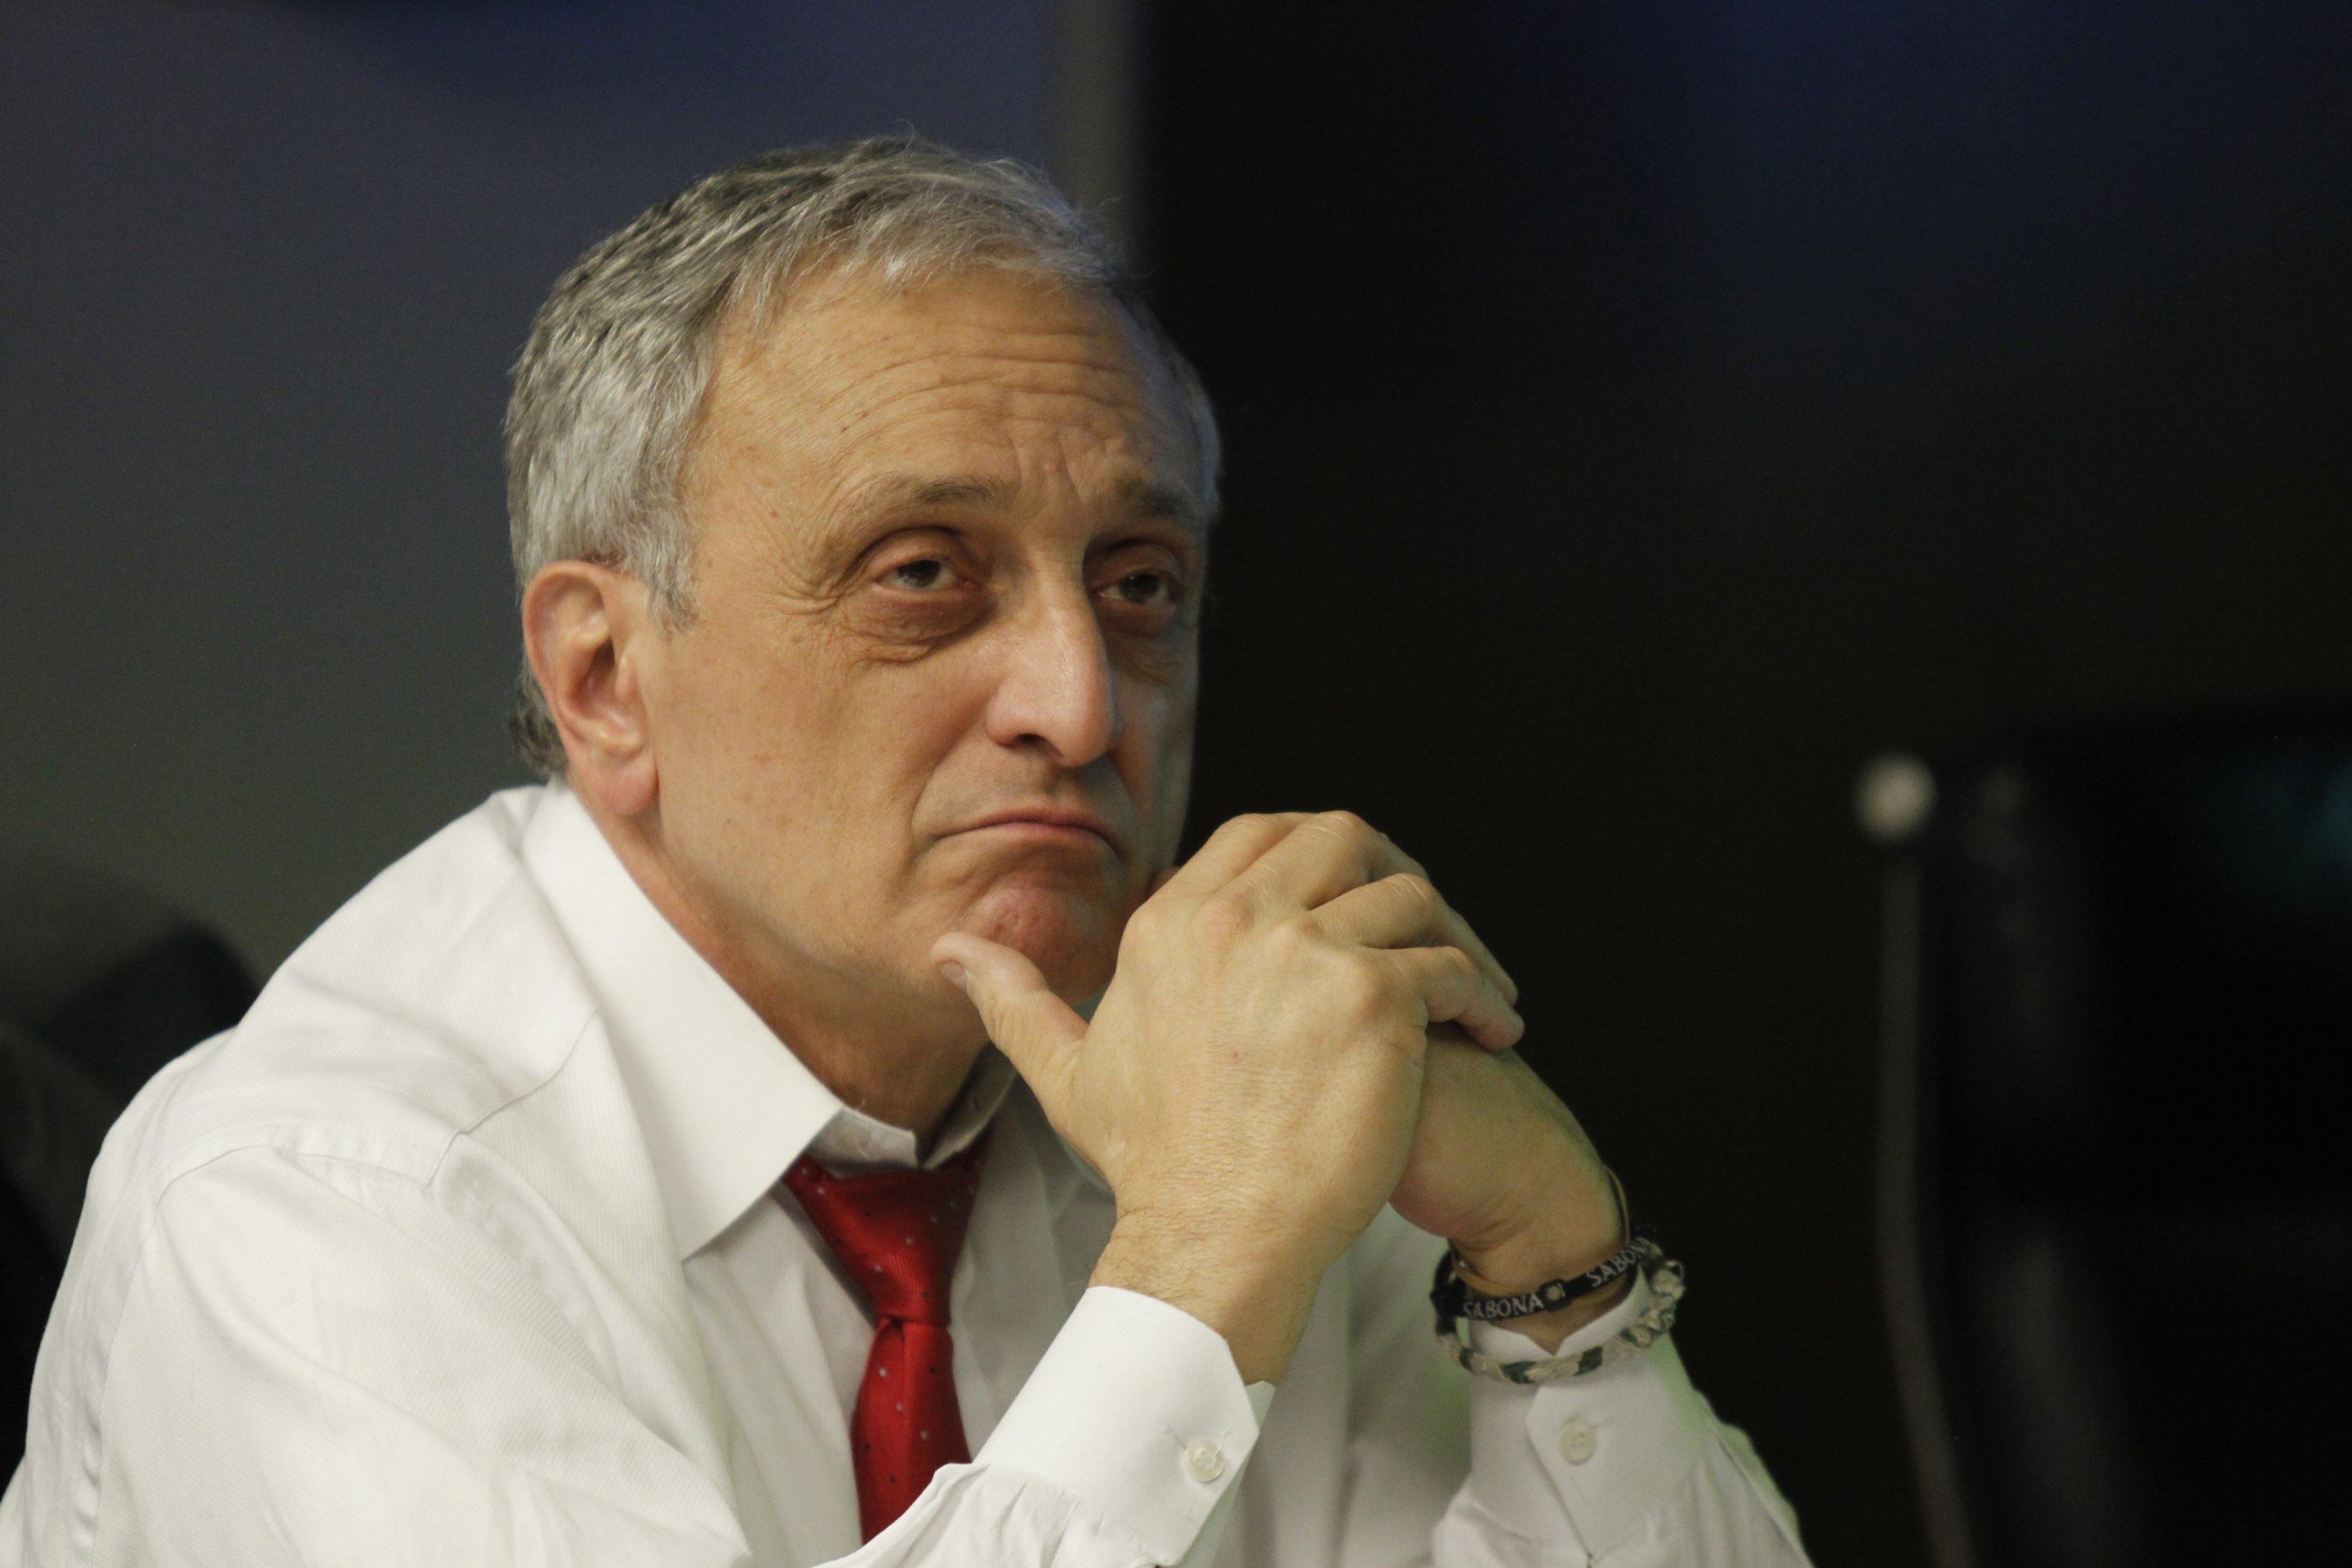 Buffalo School Board Member Carl Paladino opposes complying with the demands of the U.S. Education Department's Office of Civil Rights.